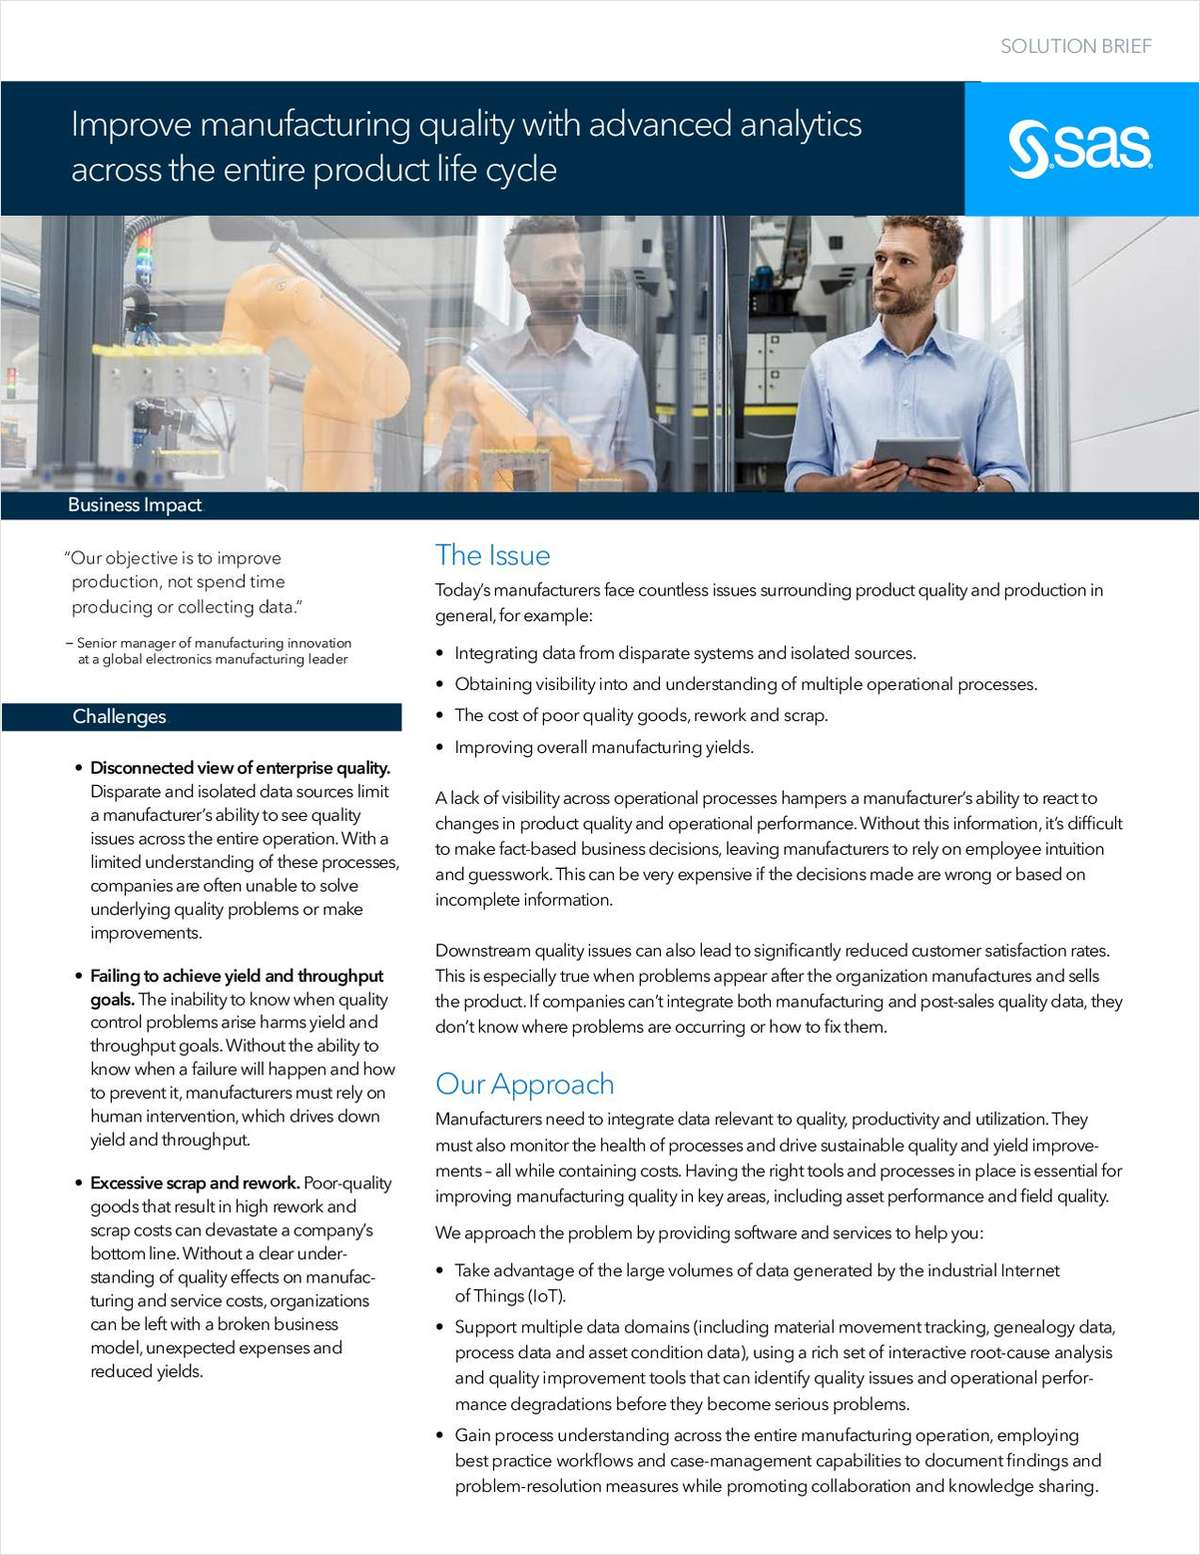 Improve manufacturing quality with advanced analytics across the entire product life cycle